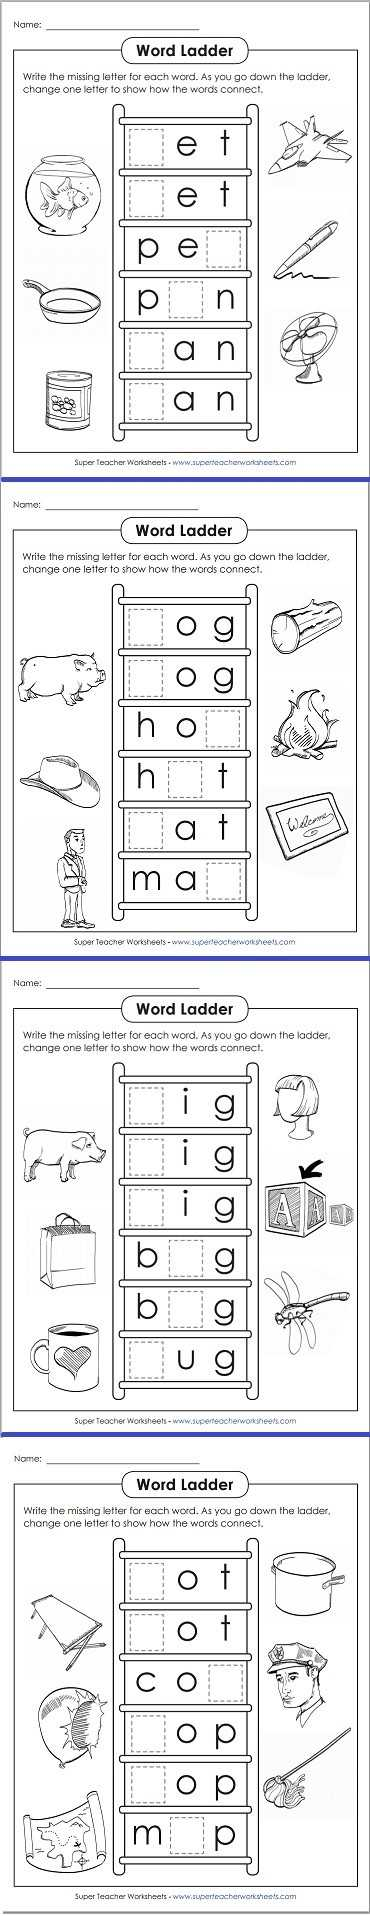 Word Ladder Worksheets for Middle School with Word Ladder Worksheets for Fourth Grade Choice Image Worksheet